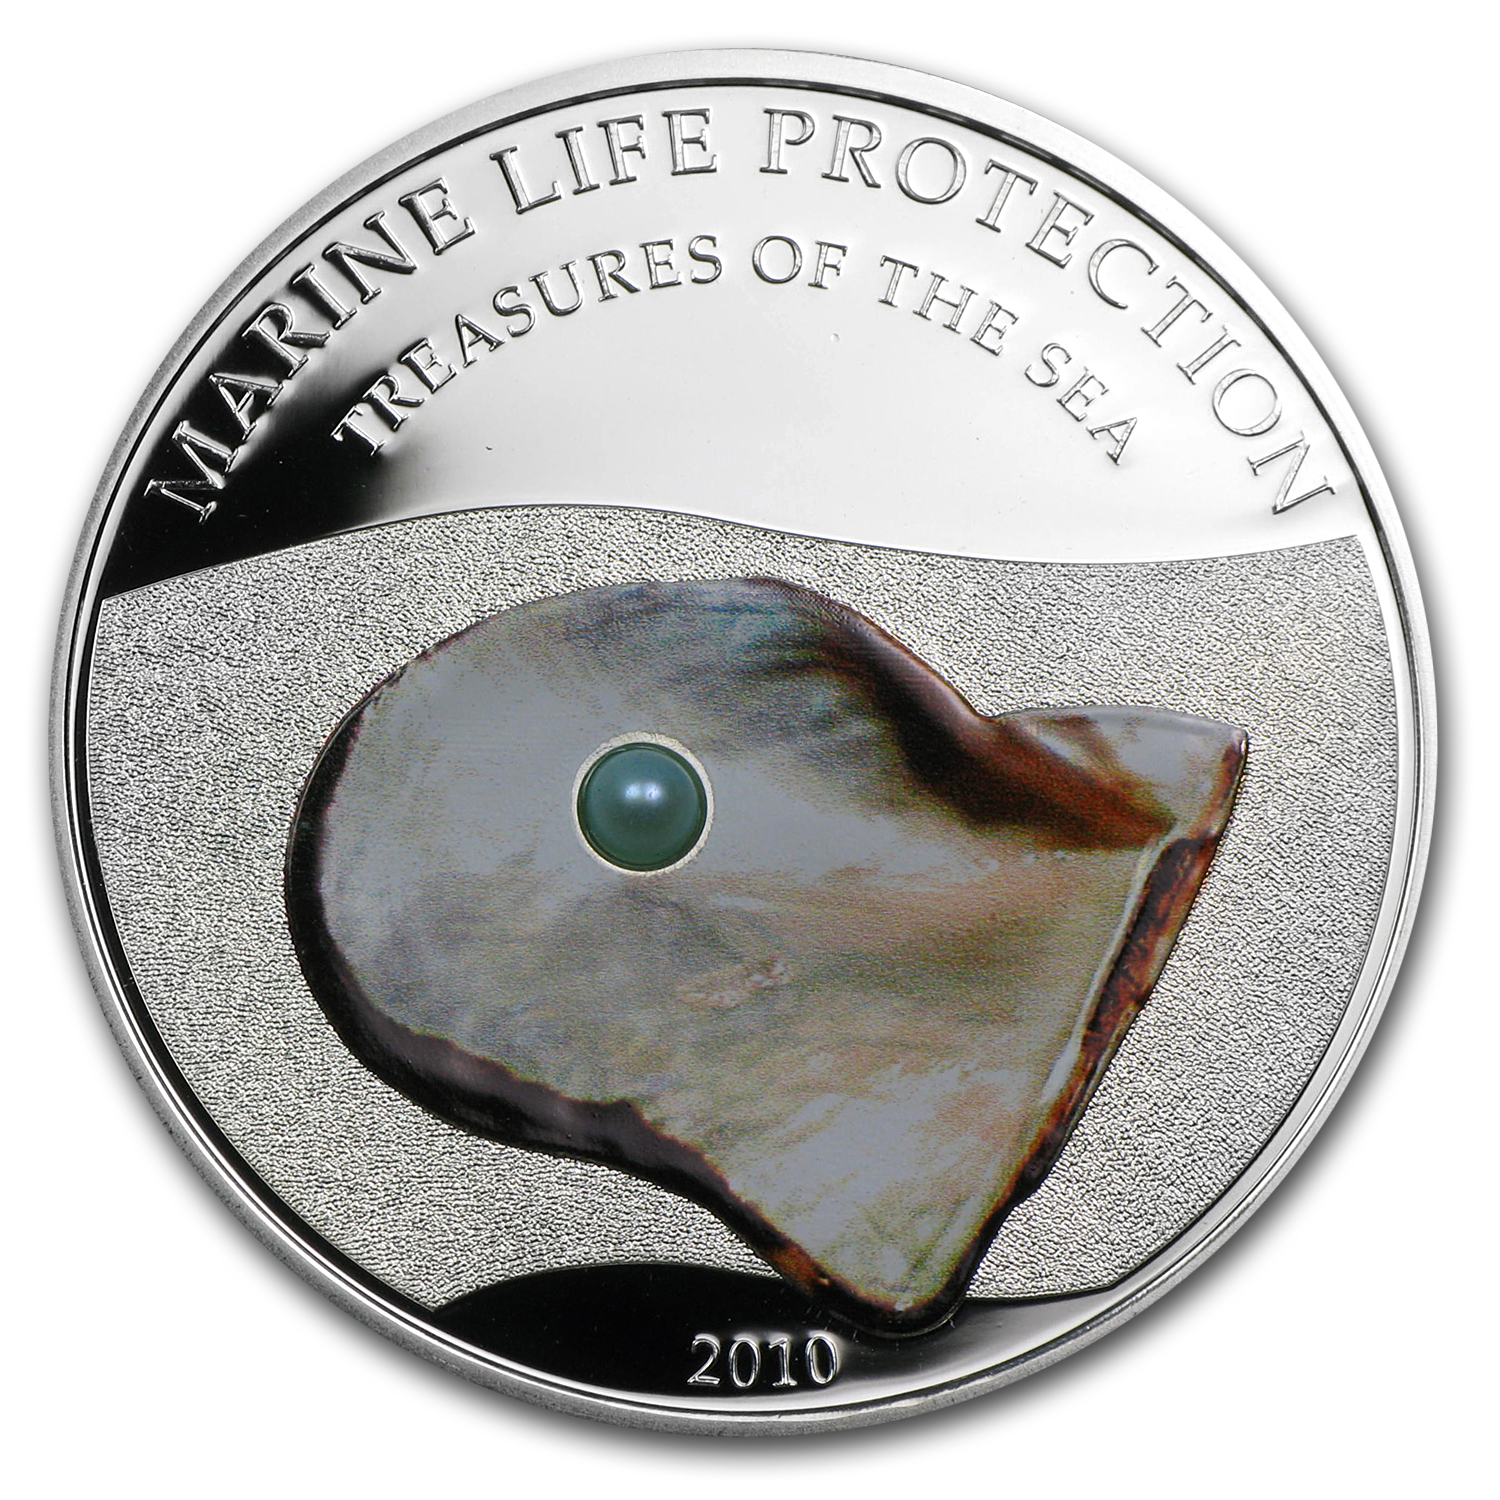 Palau 2010 Silver $5 Marine Life Protection - Blue Pearl Oyster